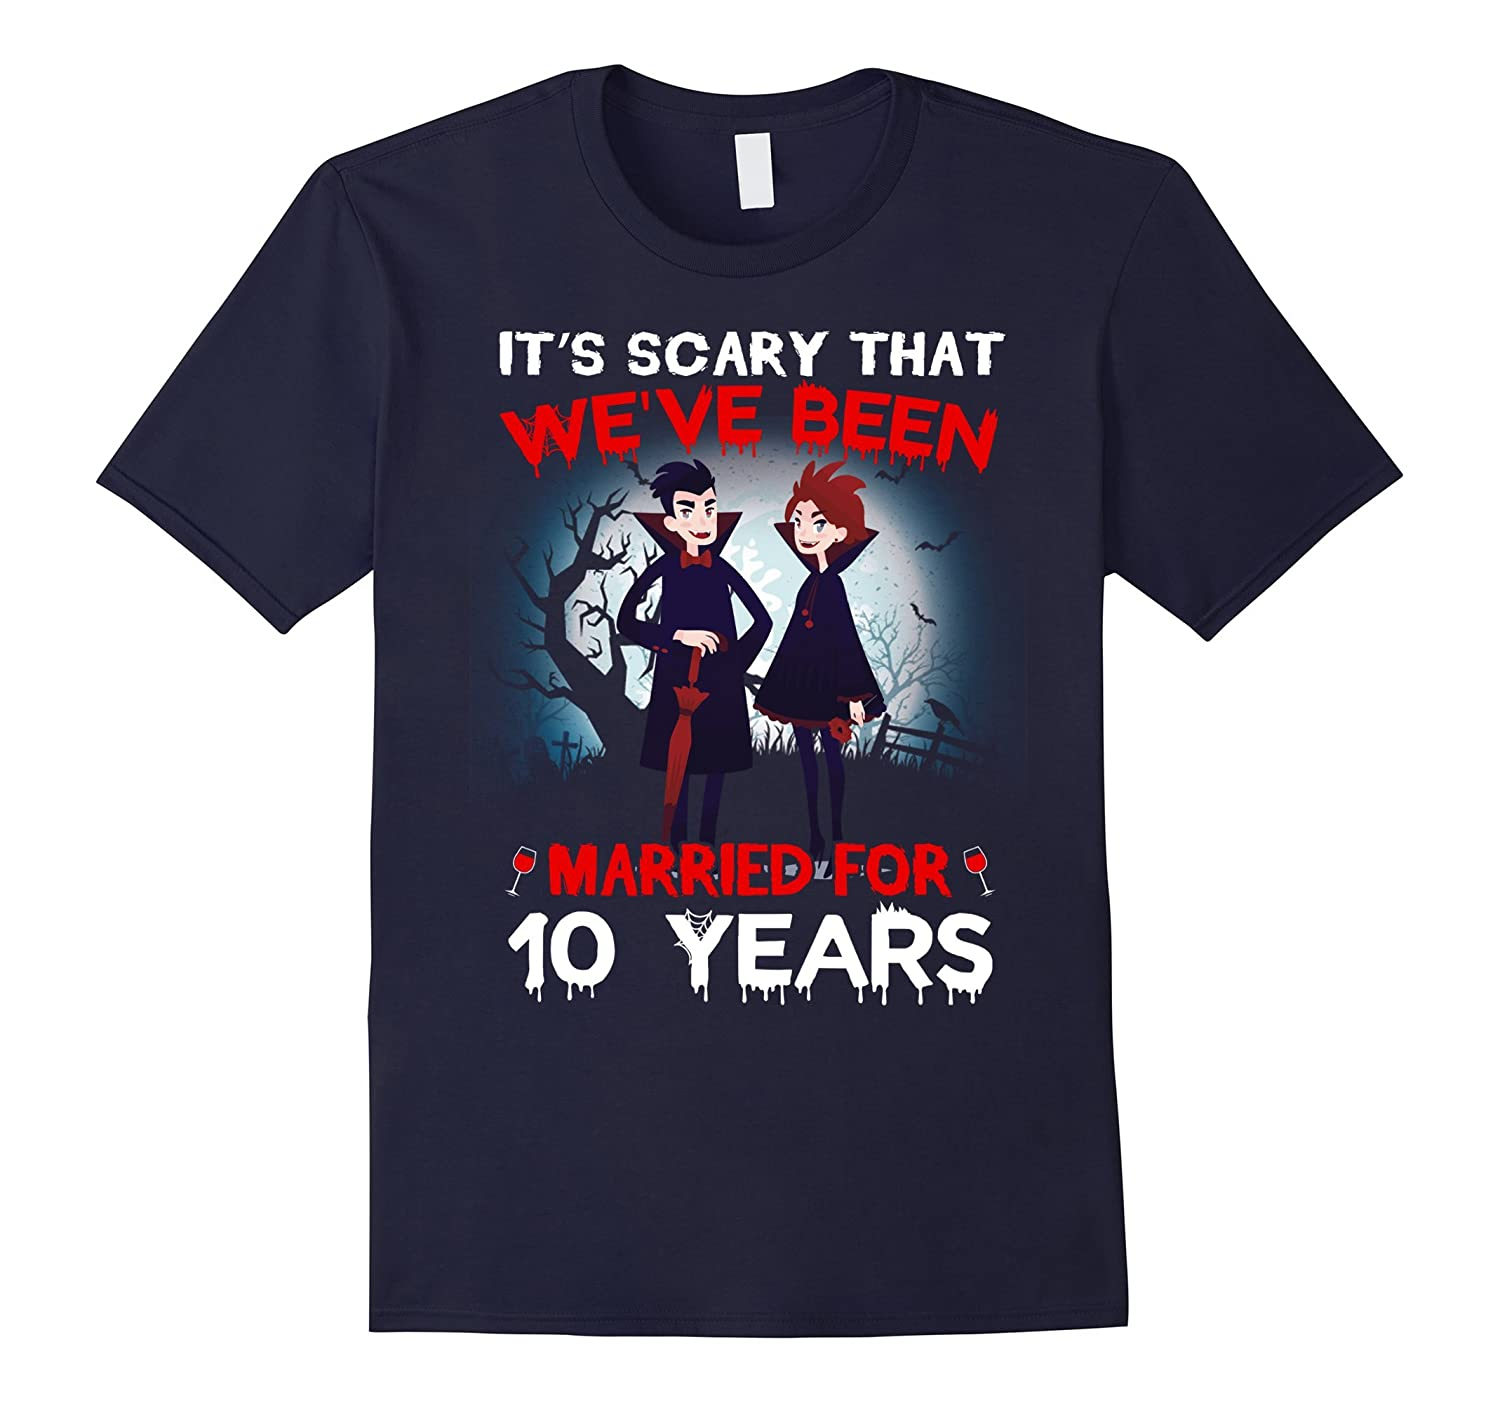 10th Anniversary Shirt Funny Halloween Costume For Couples-T-Shirt